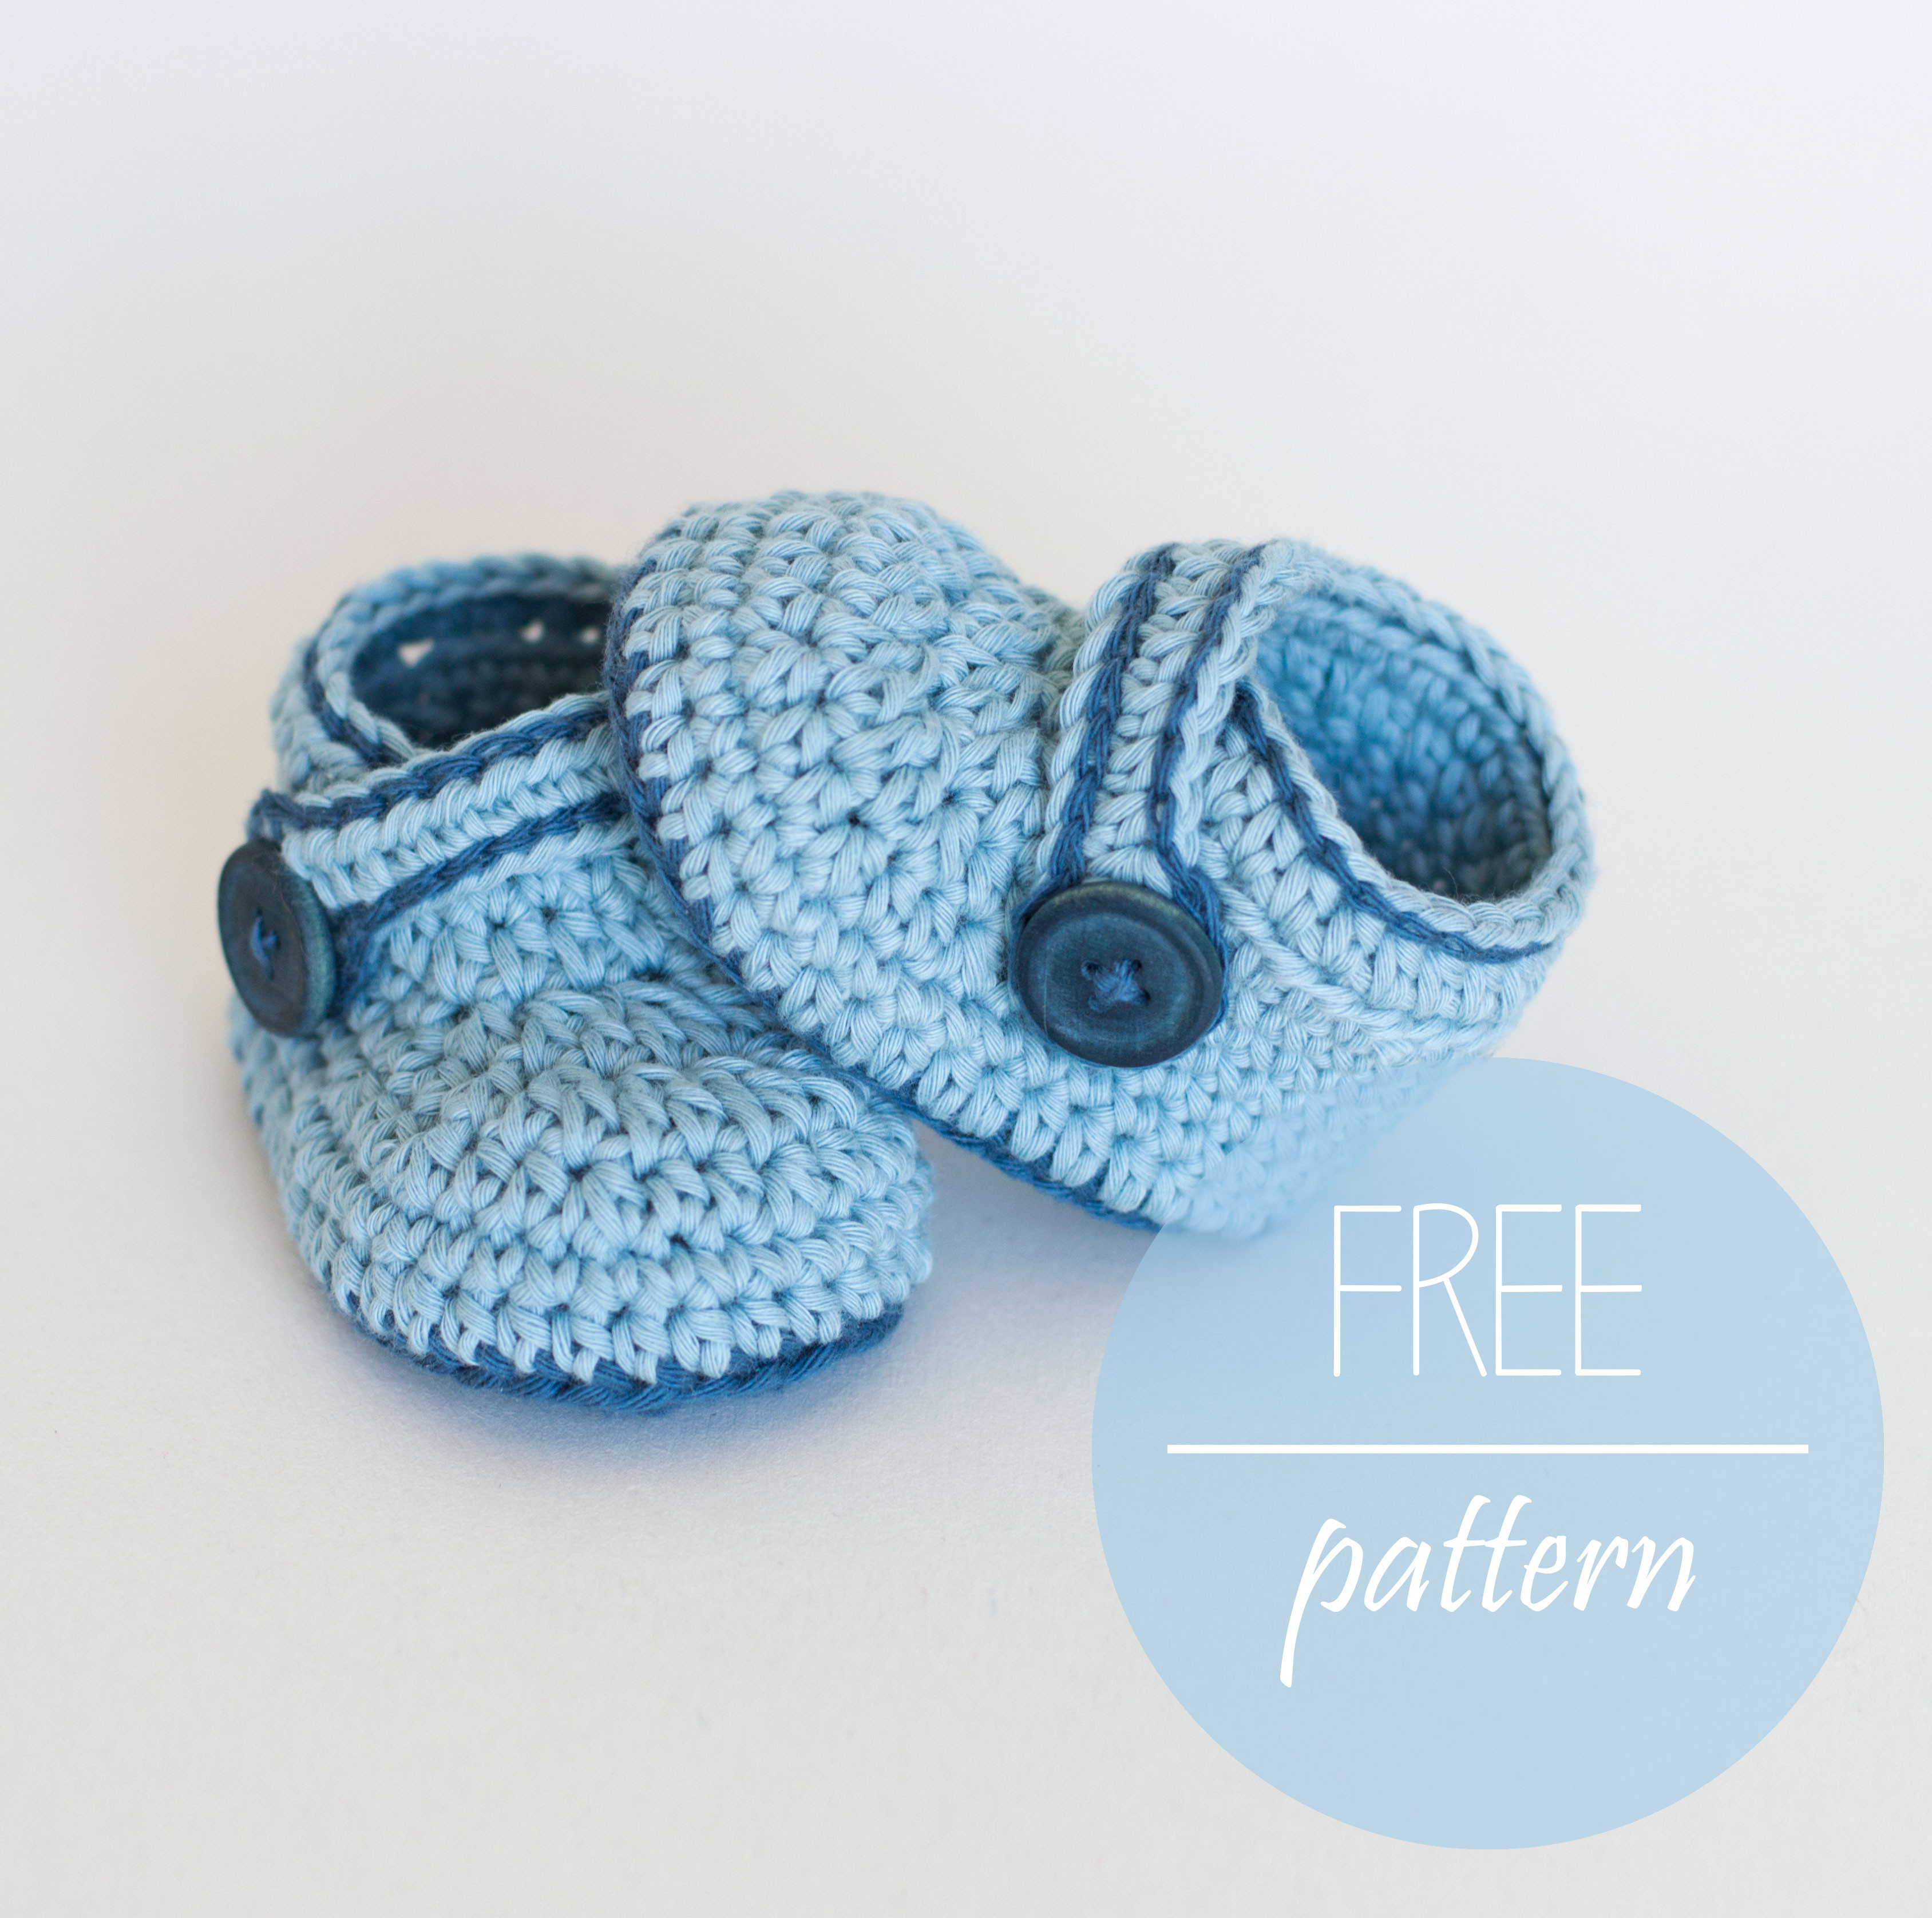 Free Crochet Baby Patterns Lovely Free Crochet Pattern – Blue Whale – Croby Patterns Of Delightful 49 Ideas Free Crochet Baby Patterns